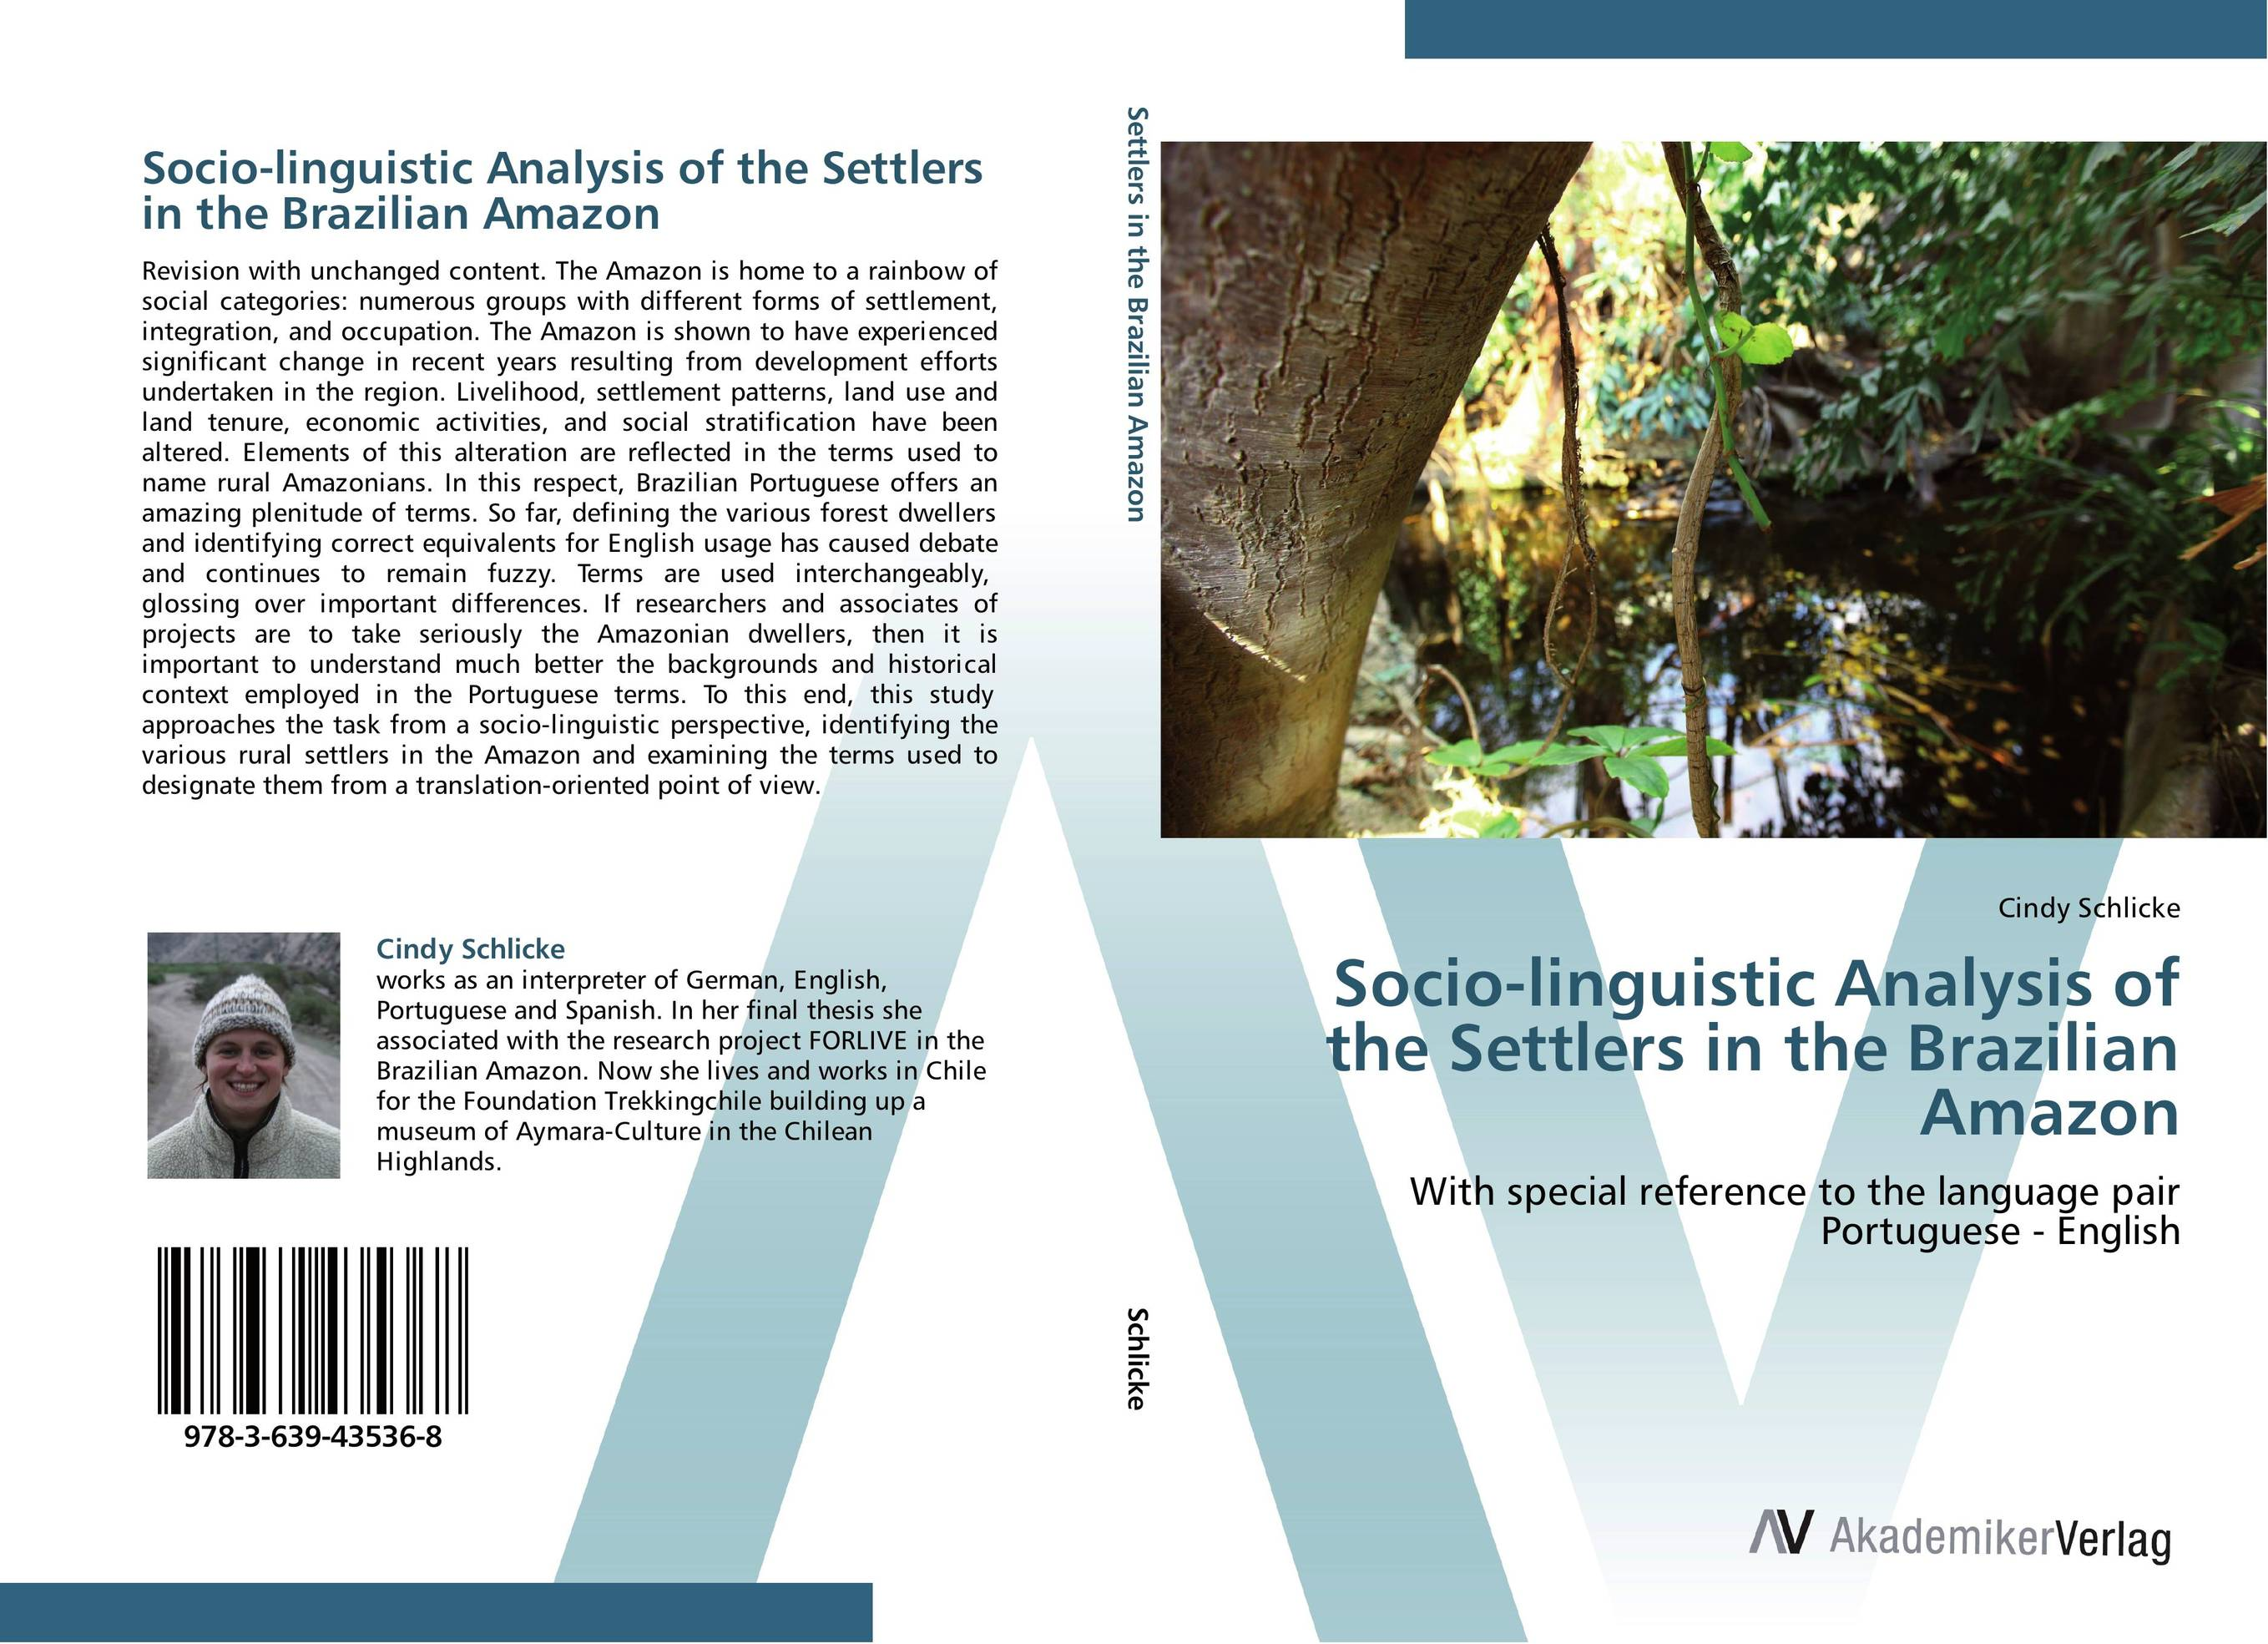 Socio-linguistic Analysis of the Settlers in the Brazilian Amazon shamima akhter m harun ar rashid and hammad uddin comparative efficiency analysis of broiler farming in bangladesh